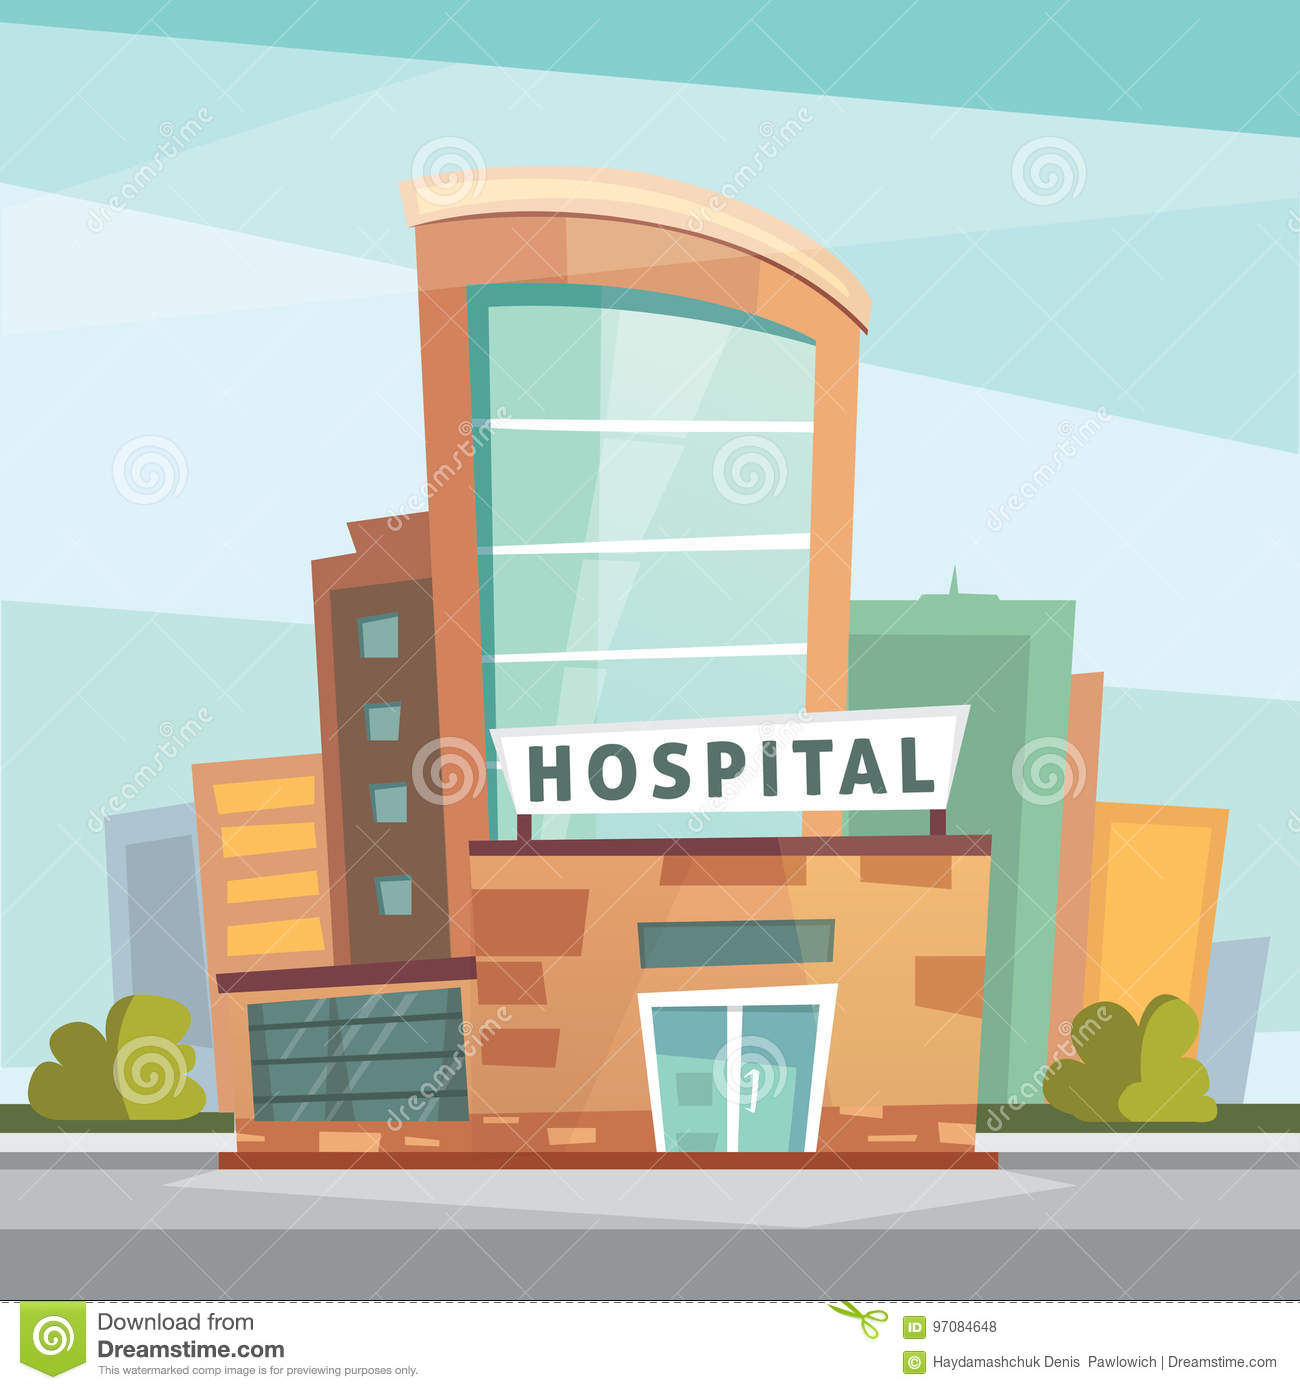 modern helicopter design with Hospital Building Cartoon Modern Vector Illustration Medical Clinic City Background Emergency Room Exterior on Agustawestland also Top 10 Best Free Action Shooters 2016 moreover Watch additionally Fv5i13mrab8e8a84236 as well British Jets Have To Scramble To Escort Russian Bombers From Area.